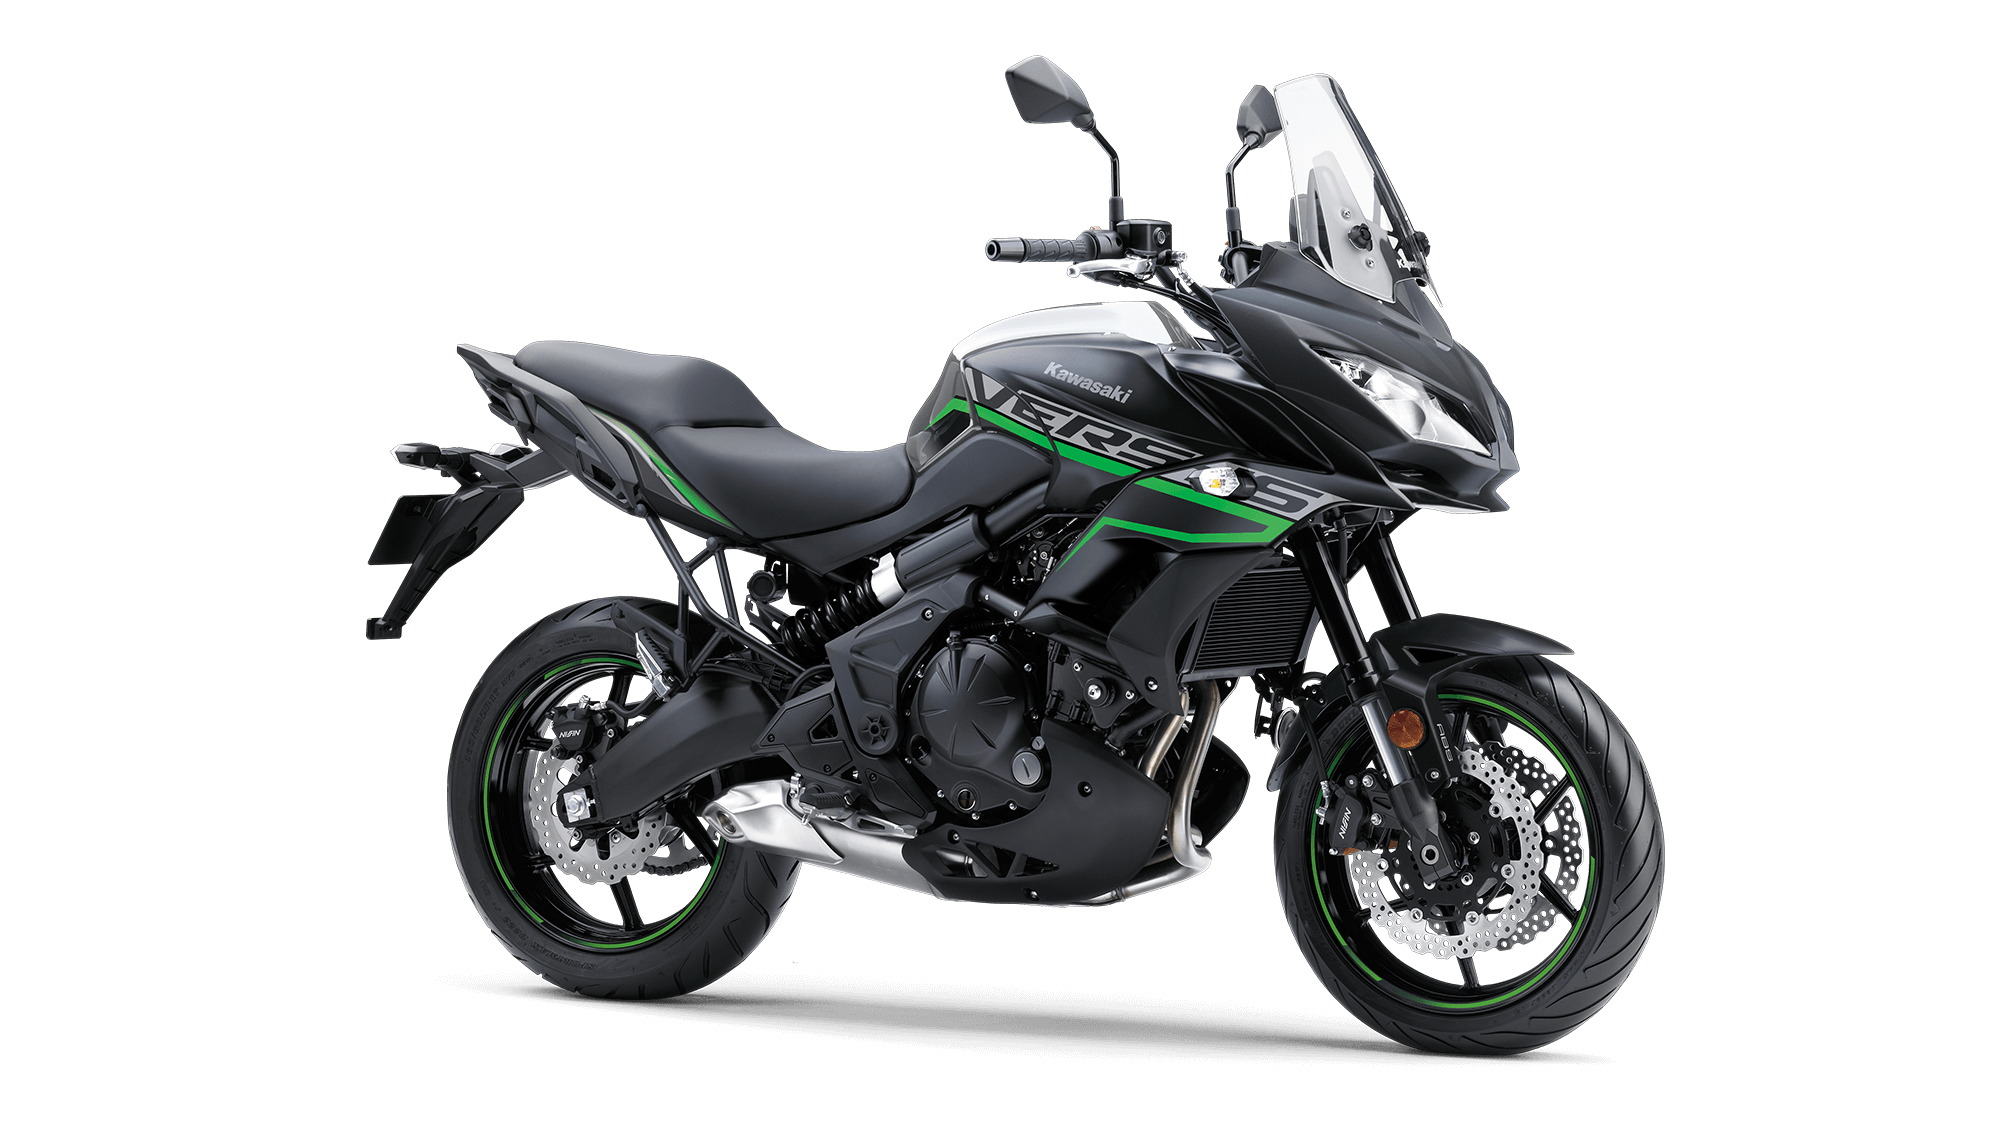 2019 versys 650 abs versys motorcycle by kawasaki. Black Bedroom Furniture Sets. Home Design Ideas